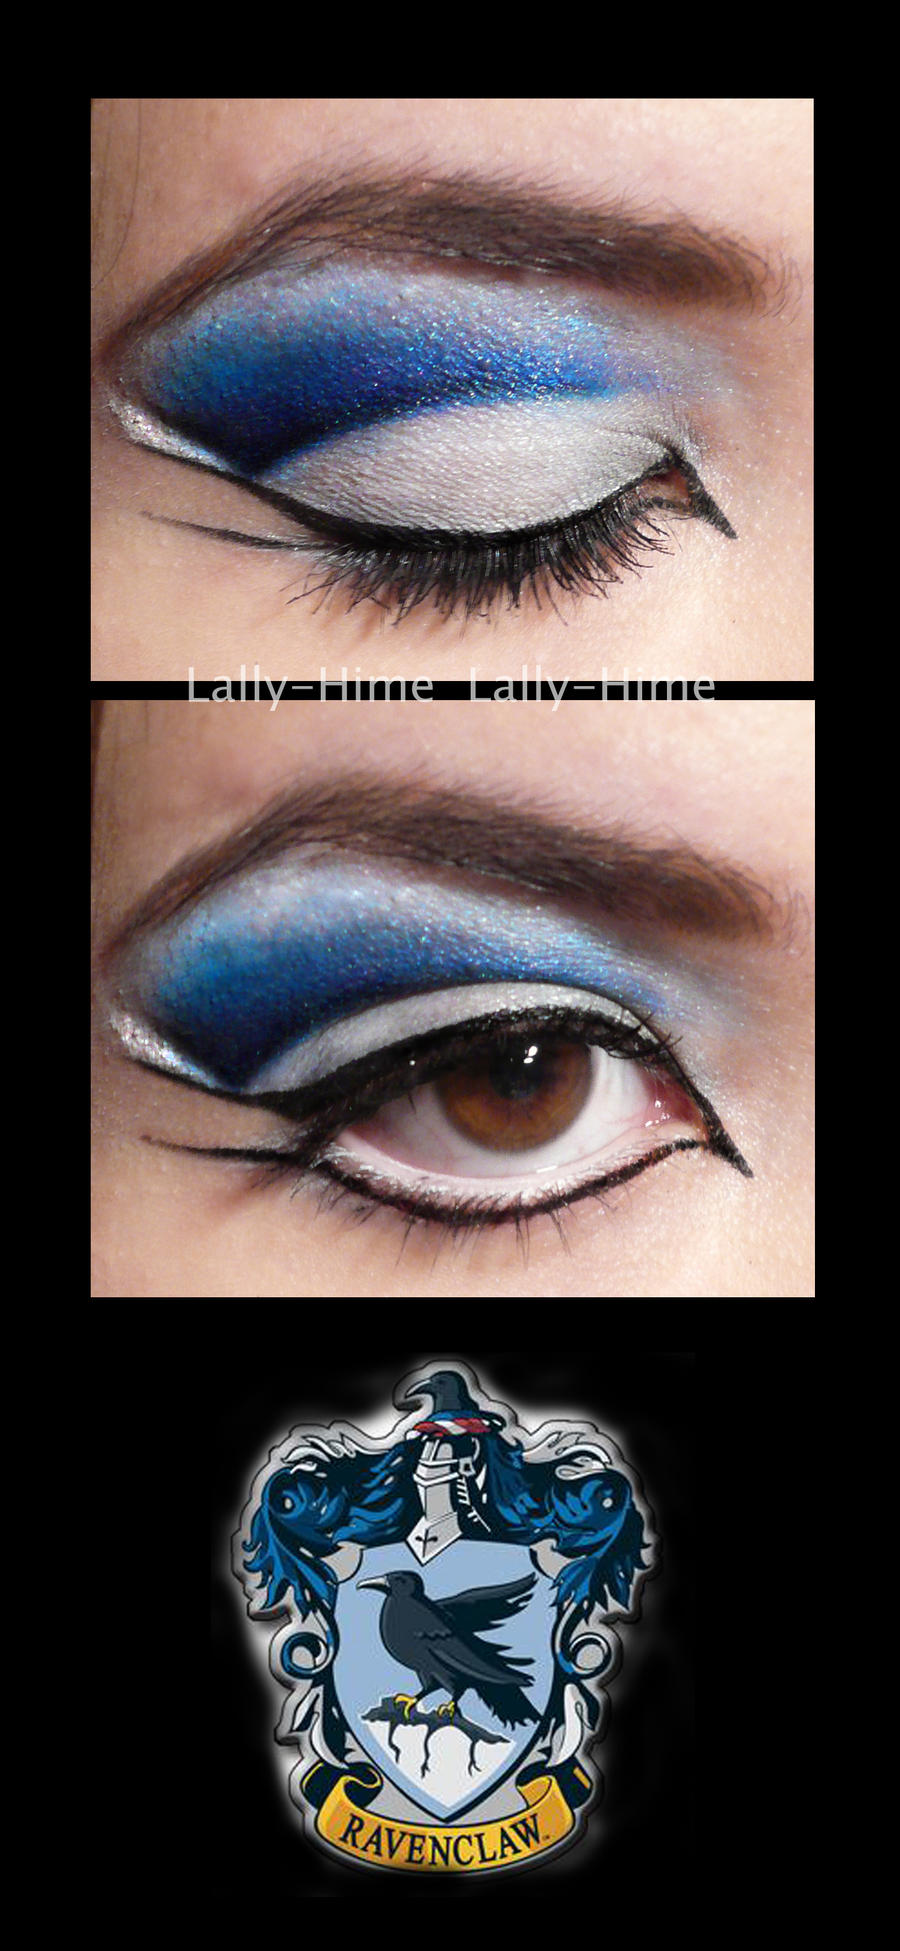 Ravenclaw Make Up by Lally-Hime